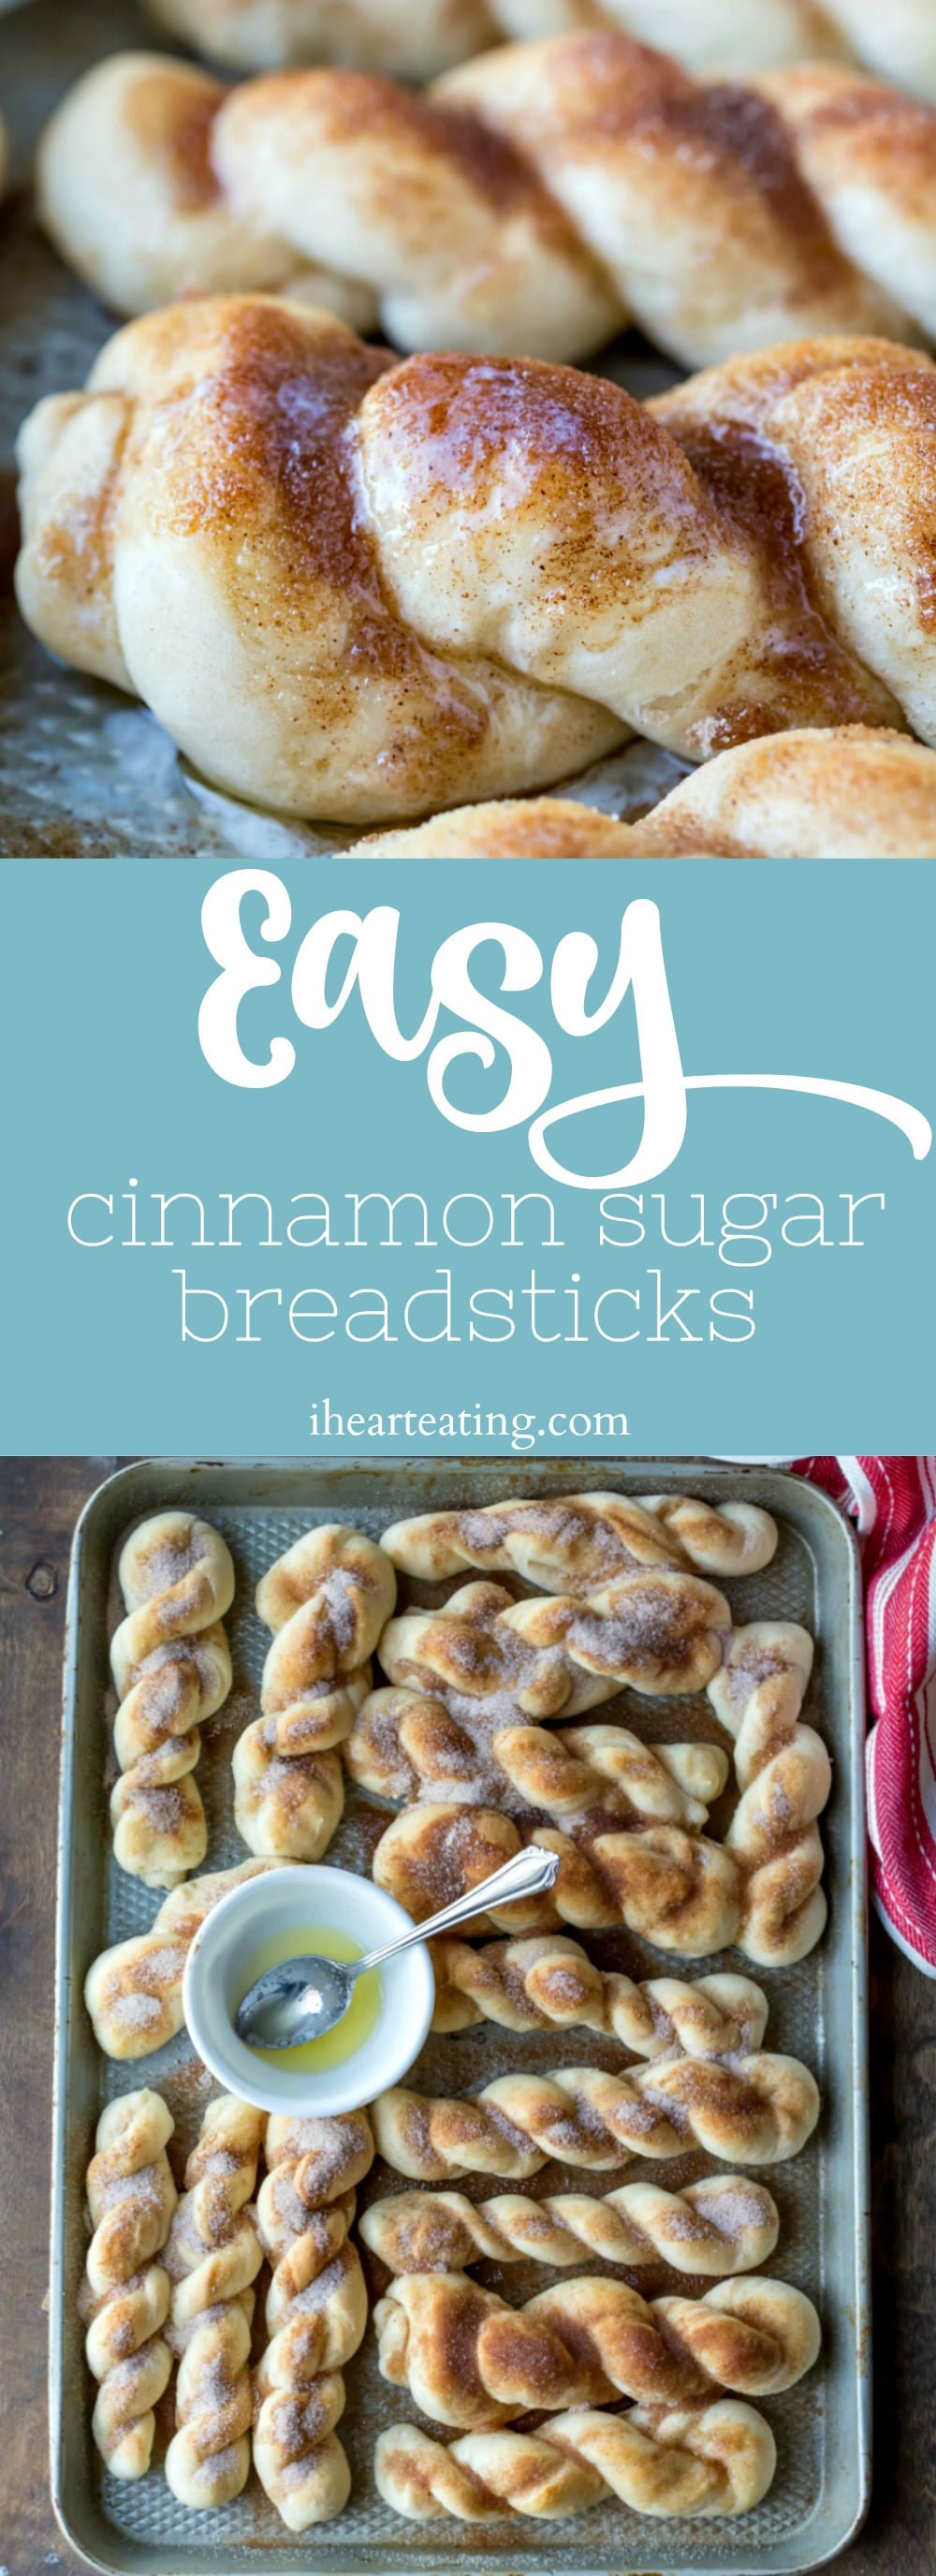 Easy cinnamon sugar breadsticks are made from scratch in just 1 hour! Dough is egg-free, dairy-free, and vegan.